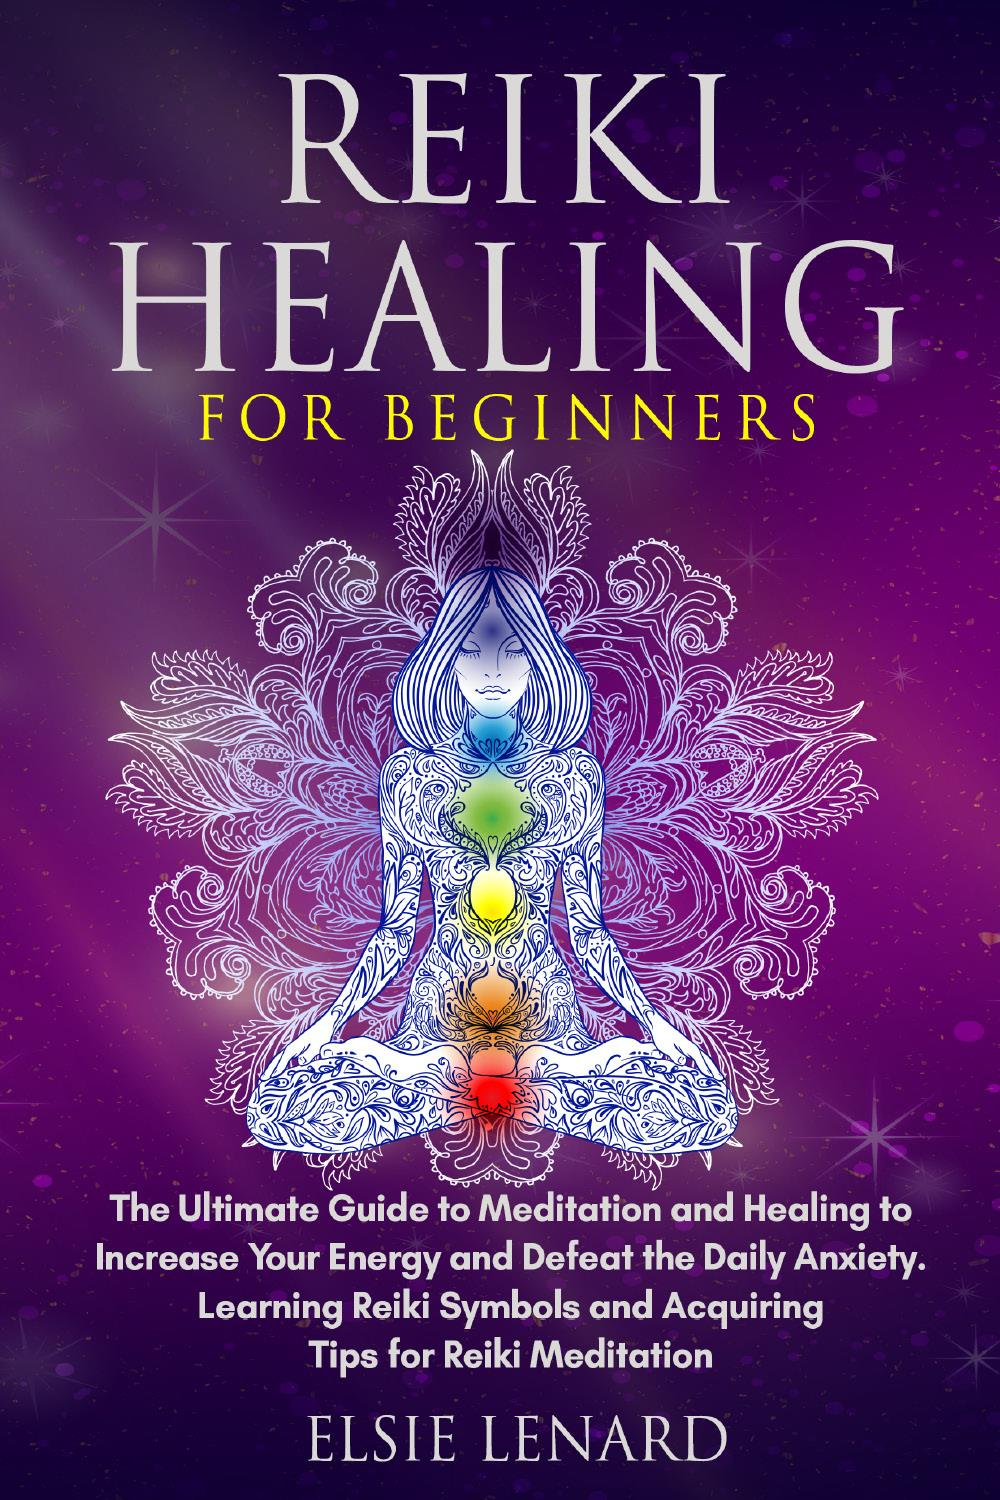 Reiki Healing for Beginners. The Ultimate Guide to Meditation and Healing to Increase Your Energy and Defeat the Daily Anxiety. Learning Reiki Symbols and Acquiring Tips for Reiki Meditation